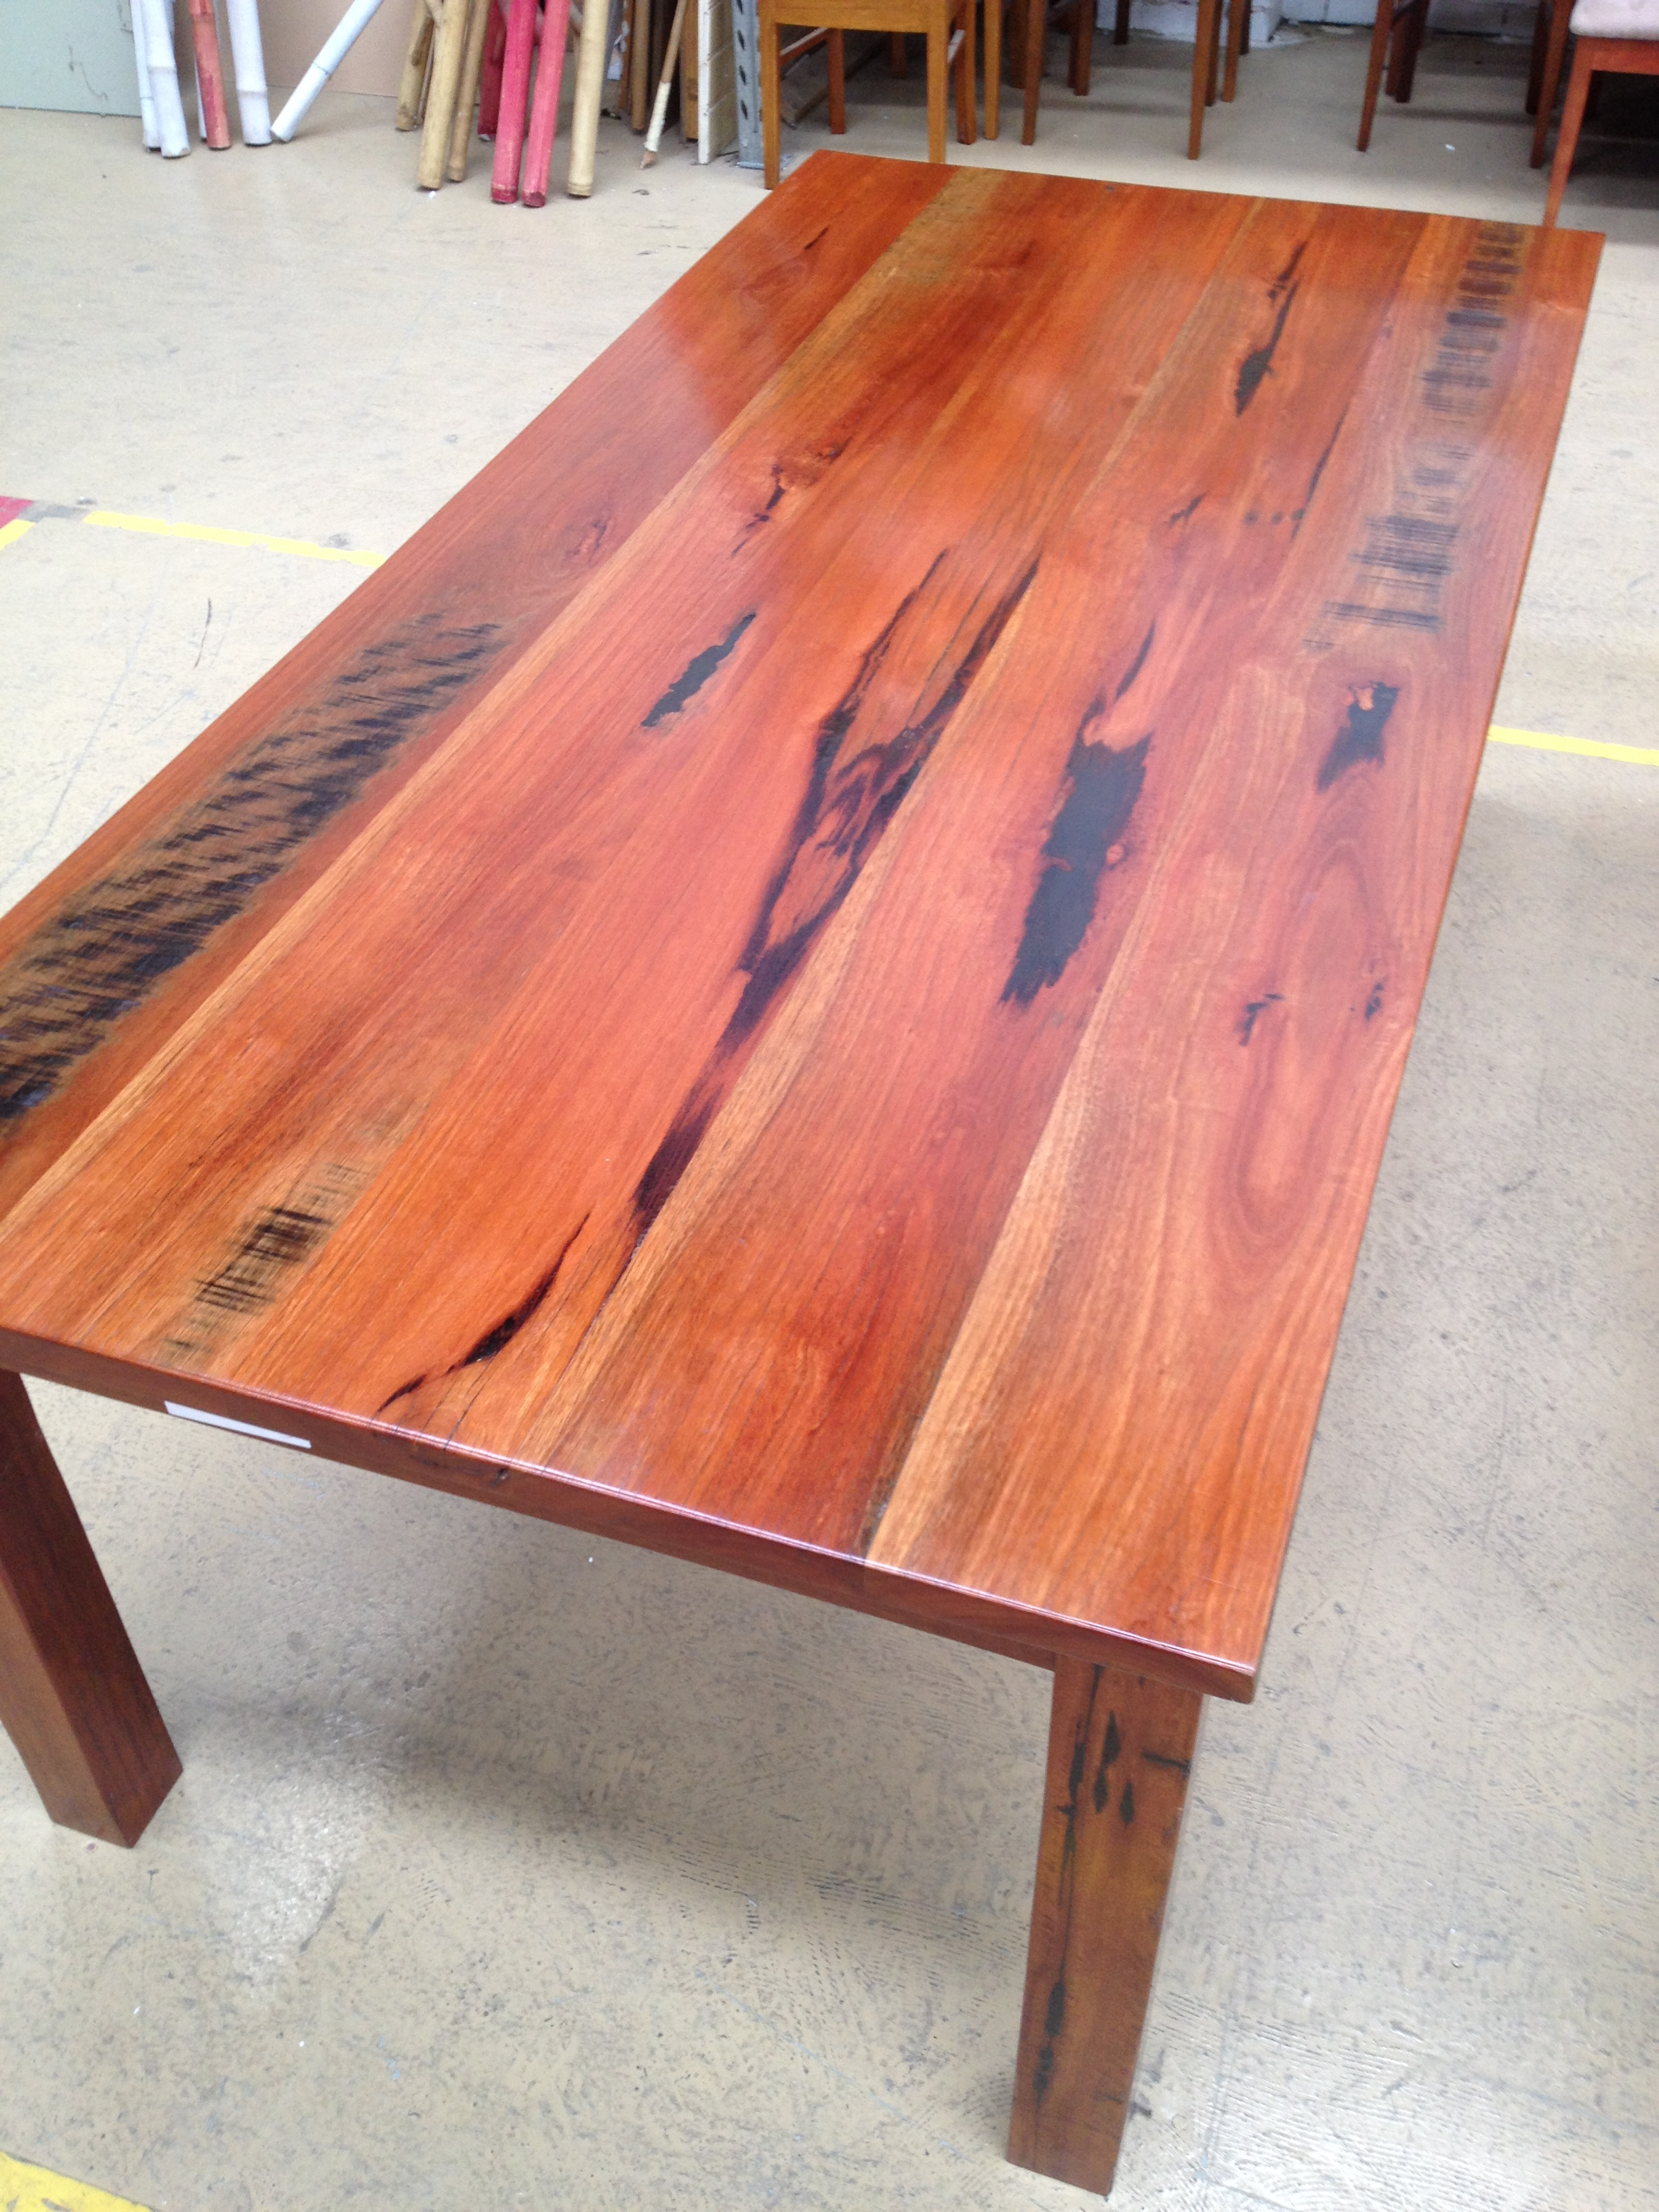 Timber Furniture Melbourne I Love Timber Furniture And Sharing My 27 Years Experiencetimber